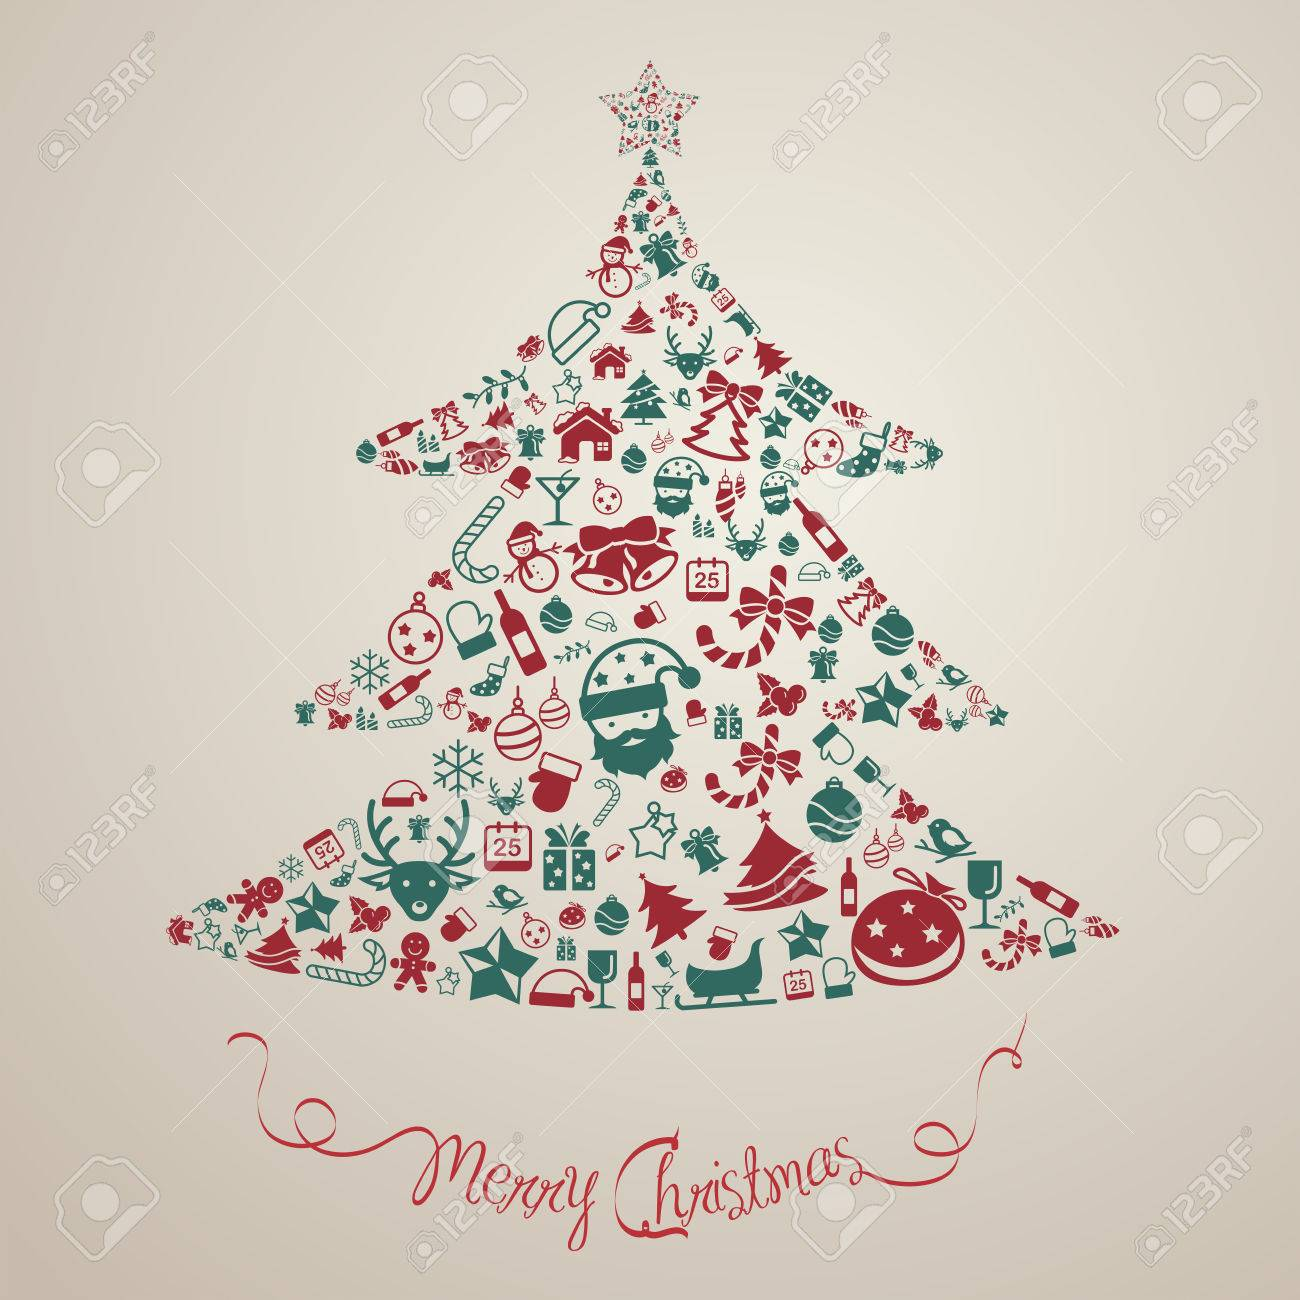 christmas and new year ornament present decoration and object icon background badge template layout in christmas